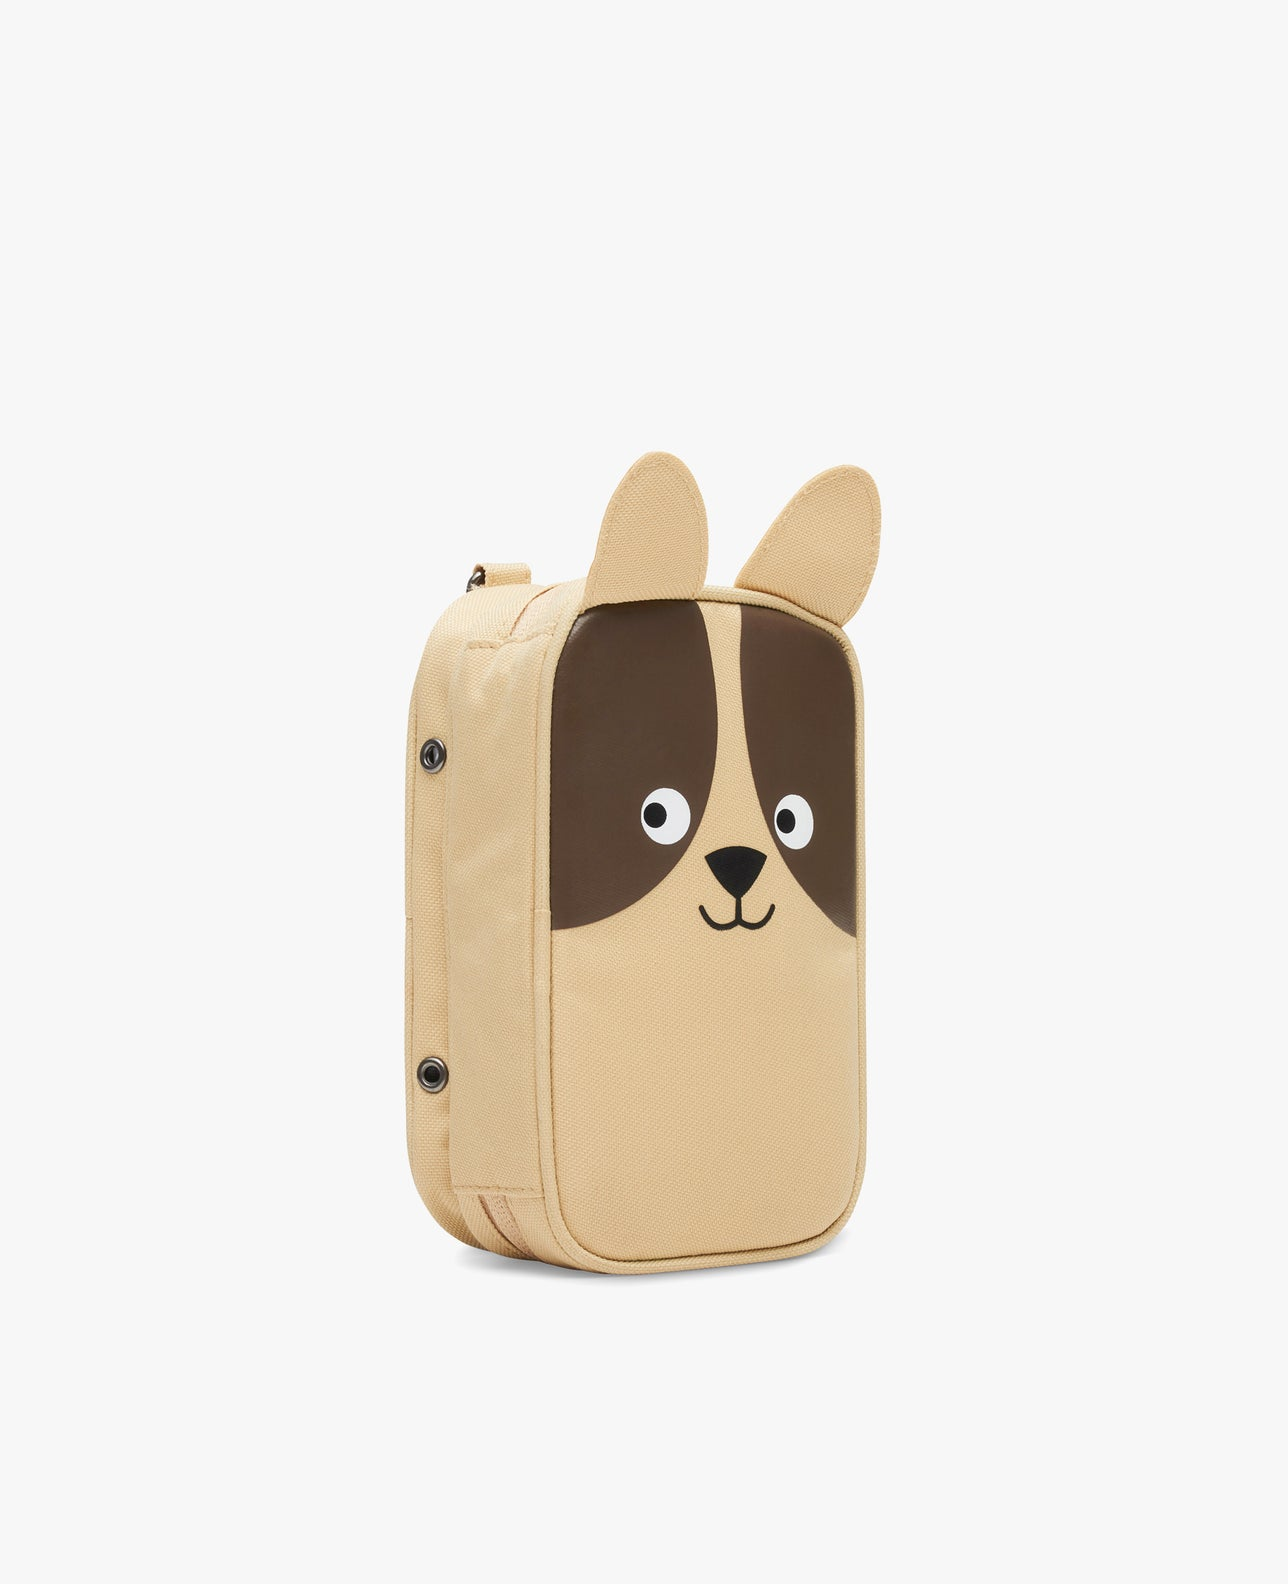 Dog Diabetes Case (Special 20% OFF Show Price!)